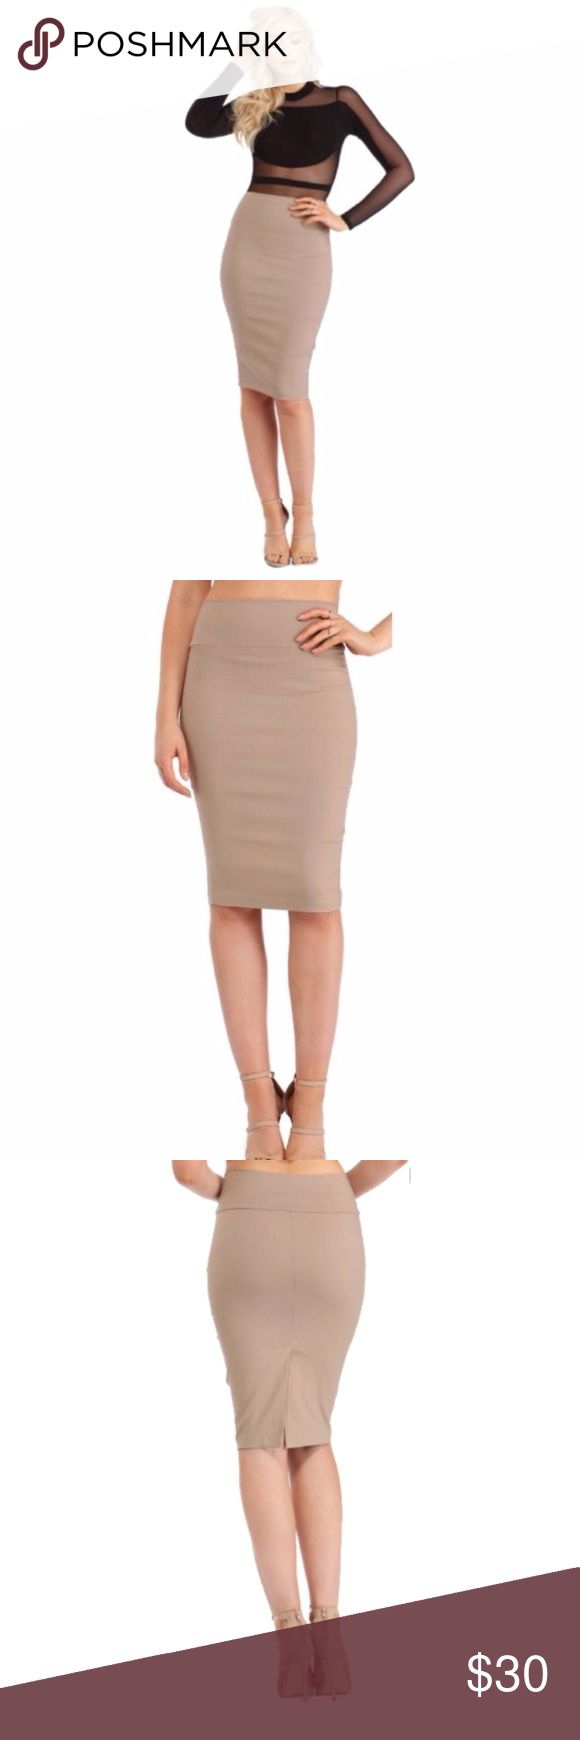 "Windsor High Waisted Pencil Skirt BRAND NEW WITHOUT TAGS. Purchased but never worn! Perfect for work or a night out with the girls! Great pencil skirt with slit in the back. Pair with a cardigan during office hours, then pair with a nice top for after hours!   Model is 5'9 with a 32"" bust, 24"" waist and 34"" hips. She is wearing a size small.  75% Rayon, 22% Nylon, 3% Spande Windsor Skirts"